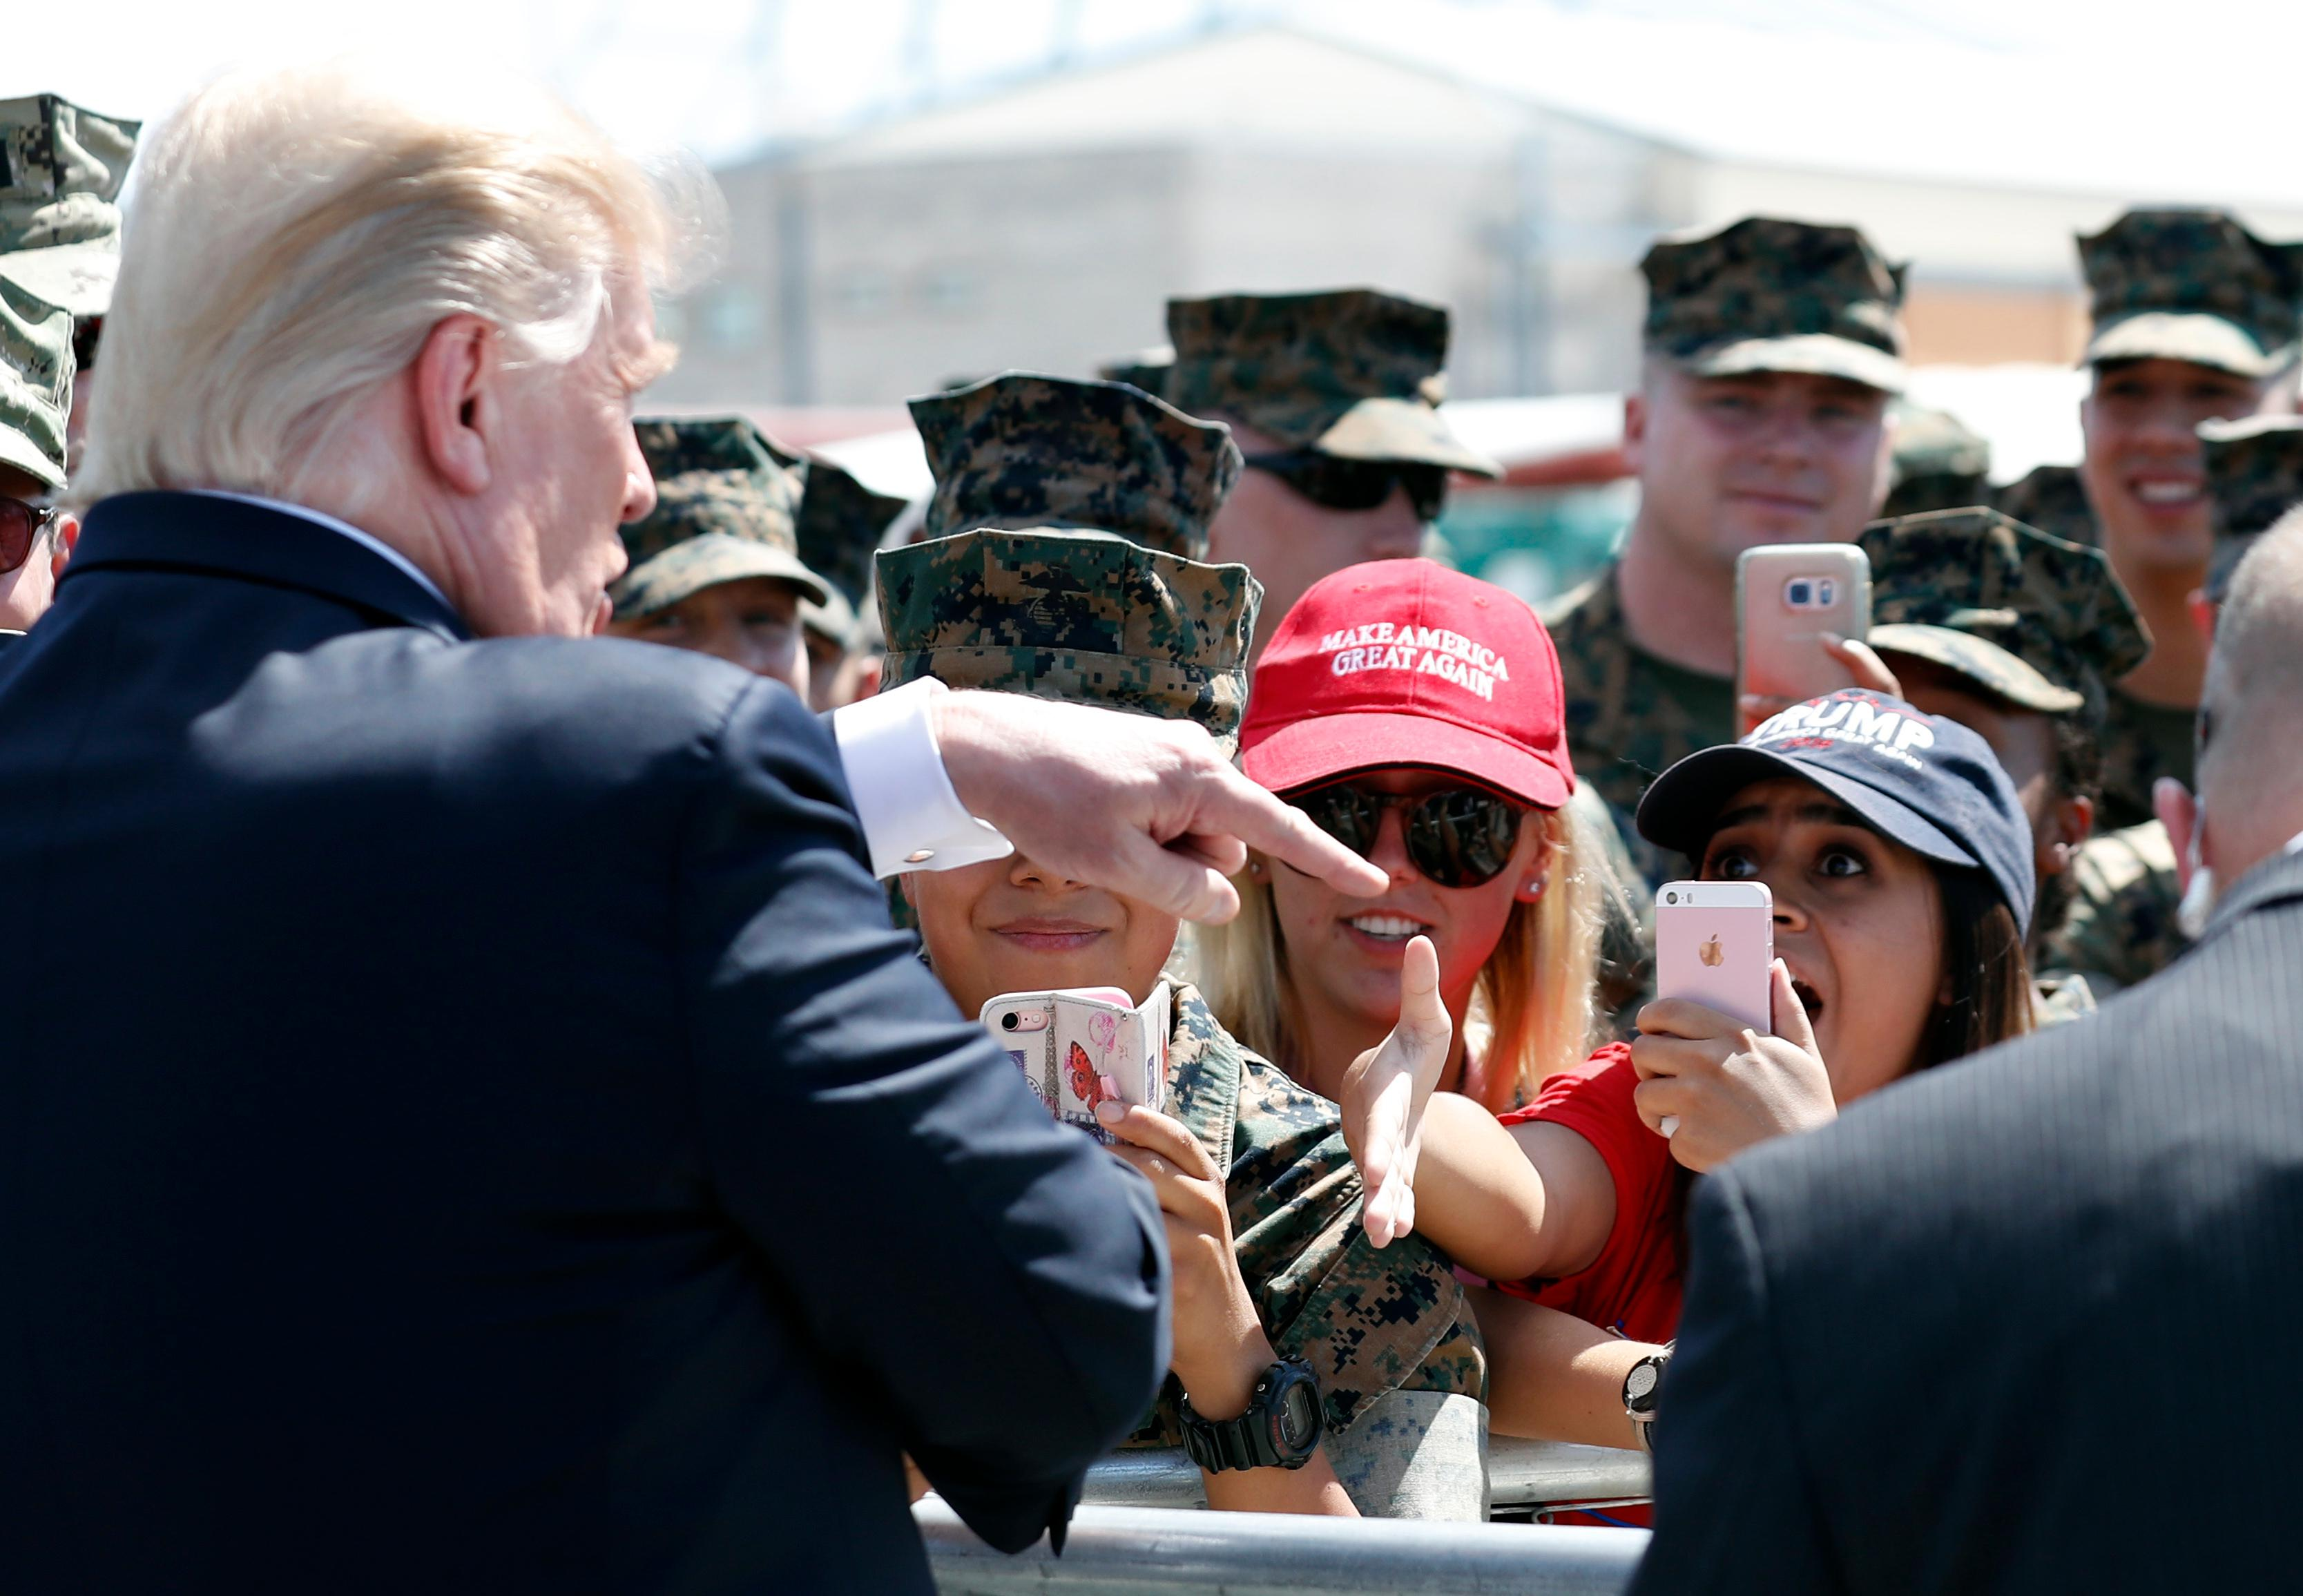 President Donald Trump greets U.S. Marines and their families before he departs Tuesday, Aug. 22, 2017, in Yuma, Ariz. (AP Photo/Alex Brandon)